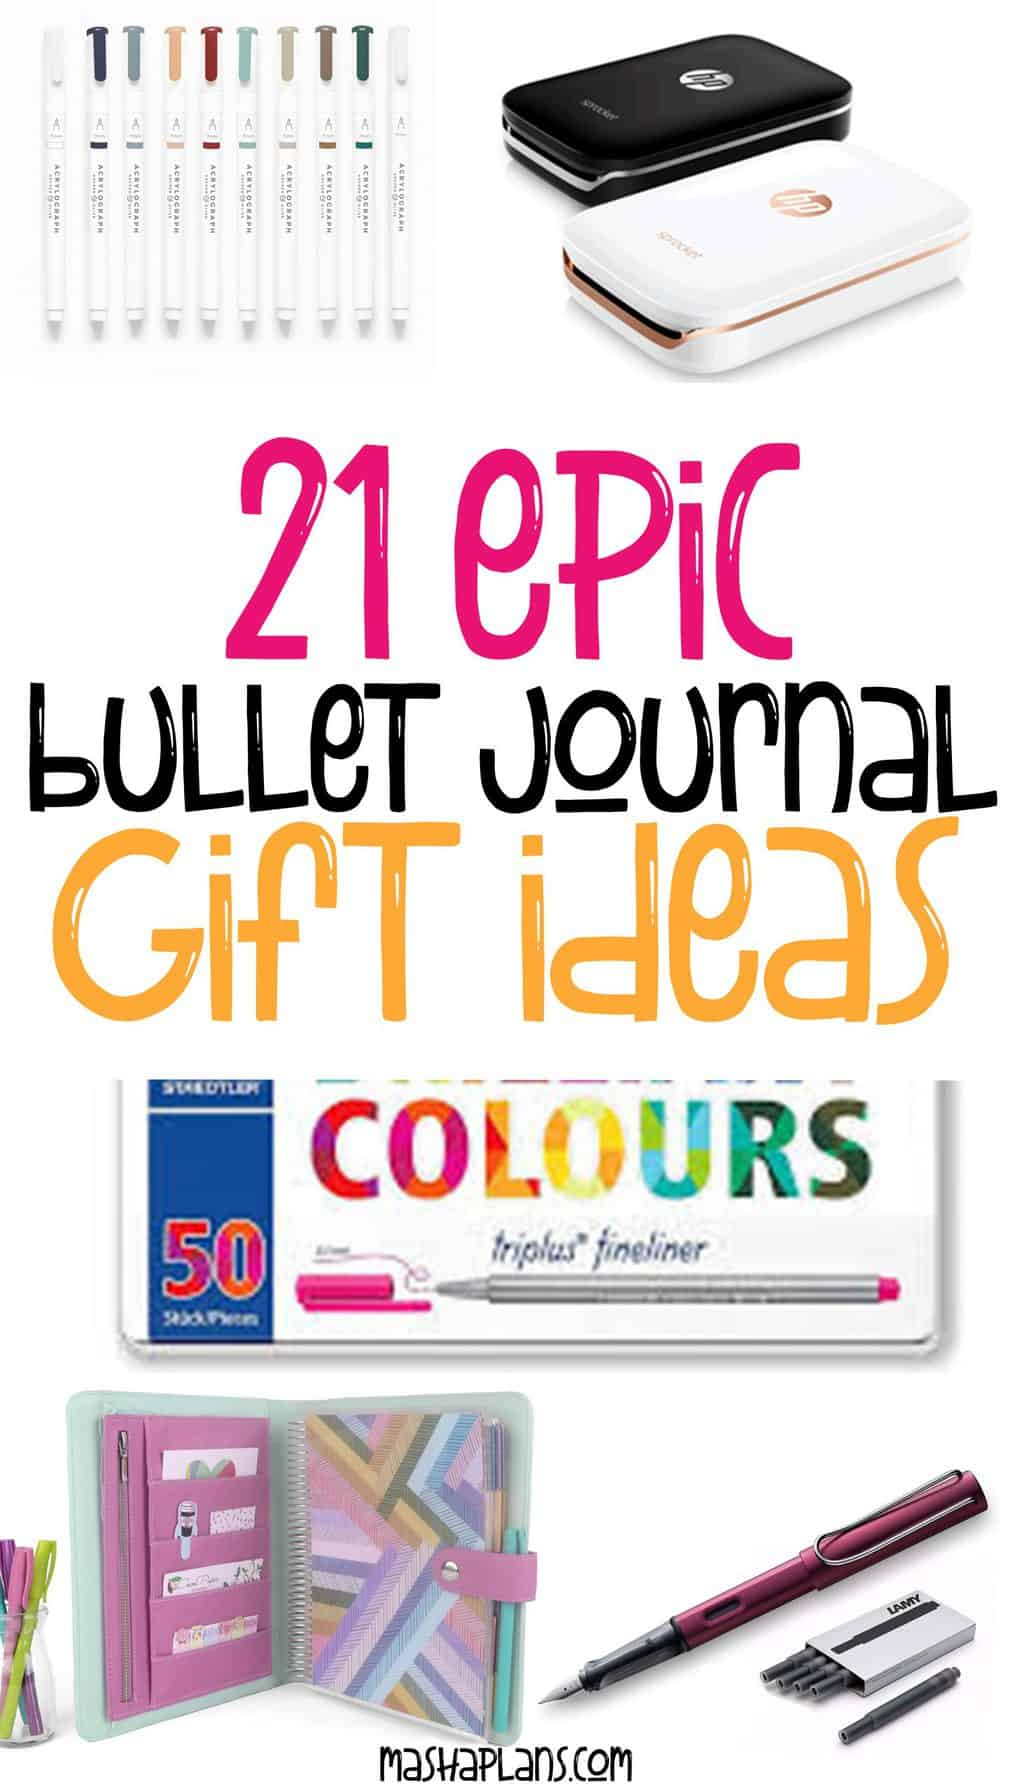 21 Epic Bullet Journal Gift Ideas Anyone Will Love | Masha Plans